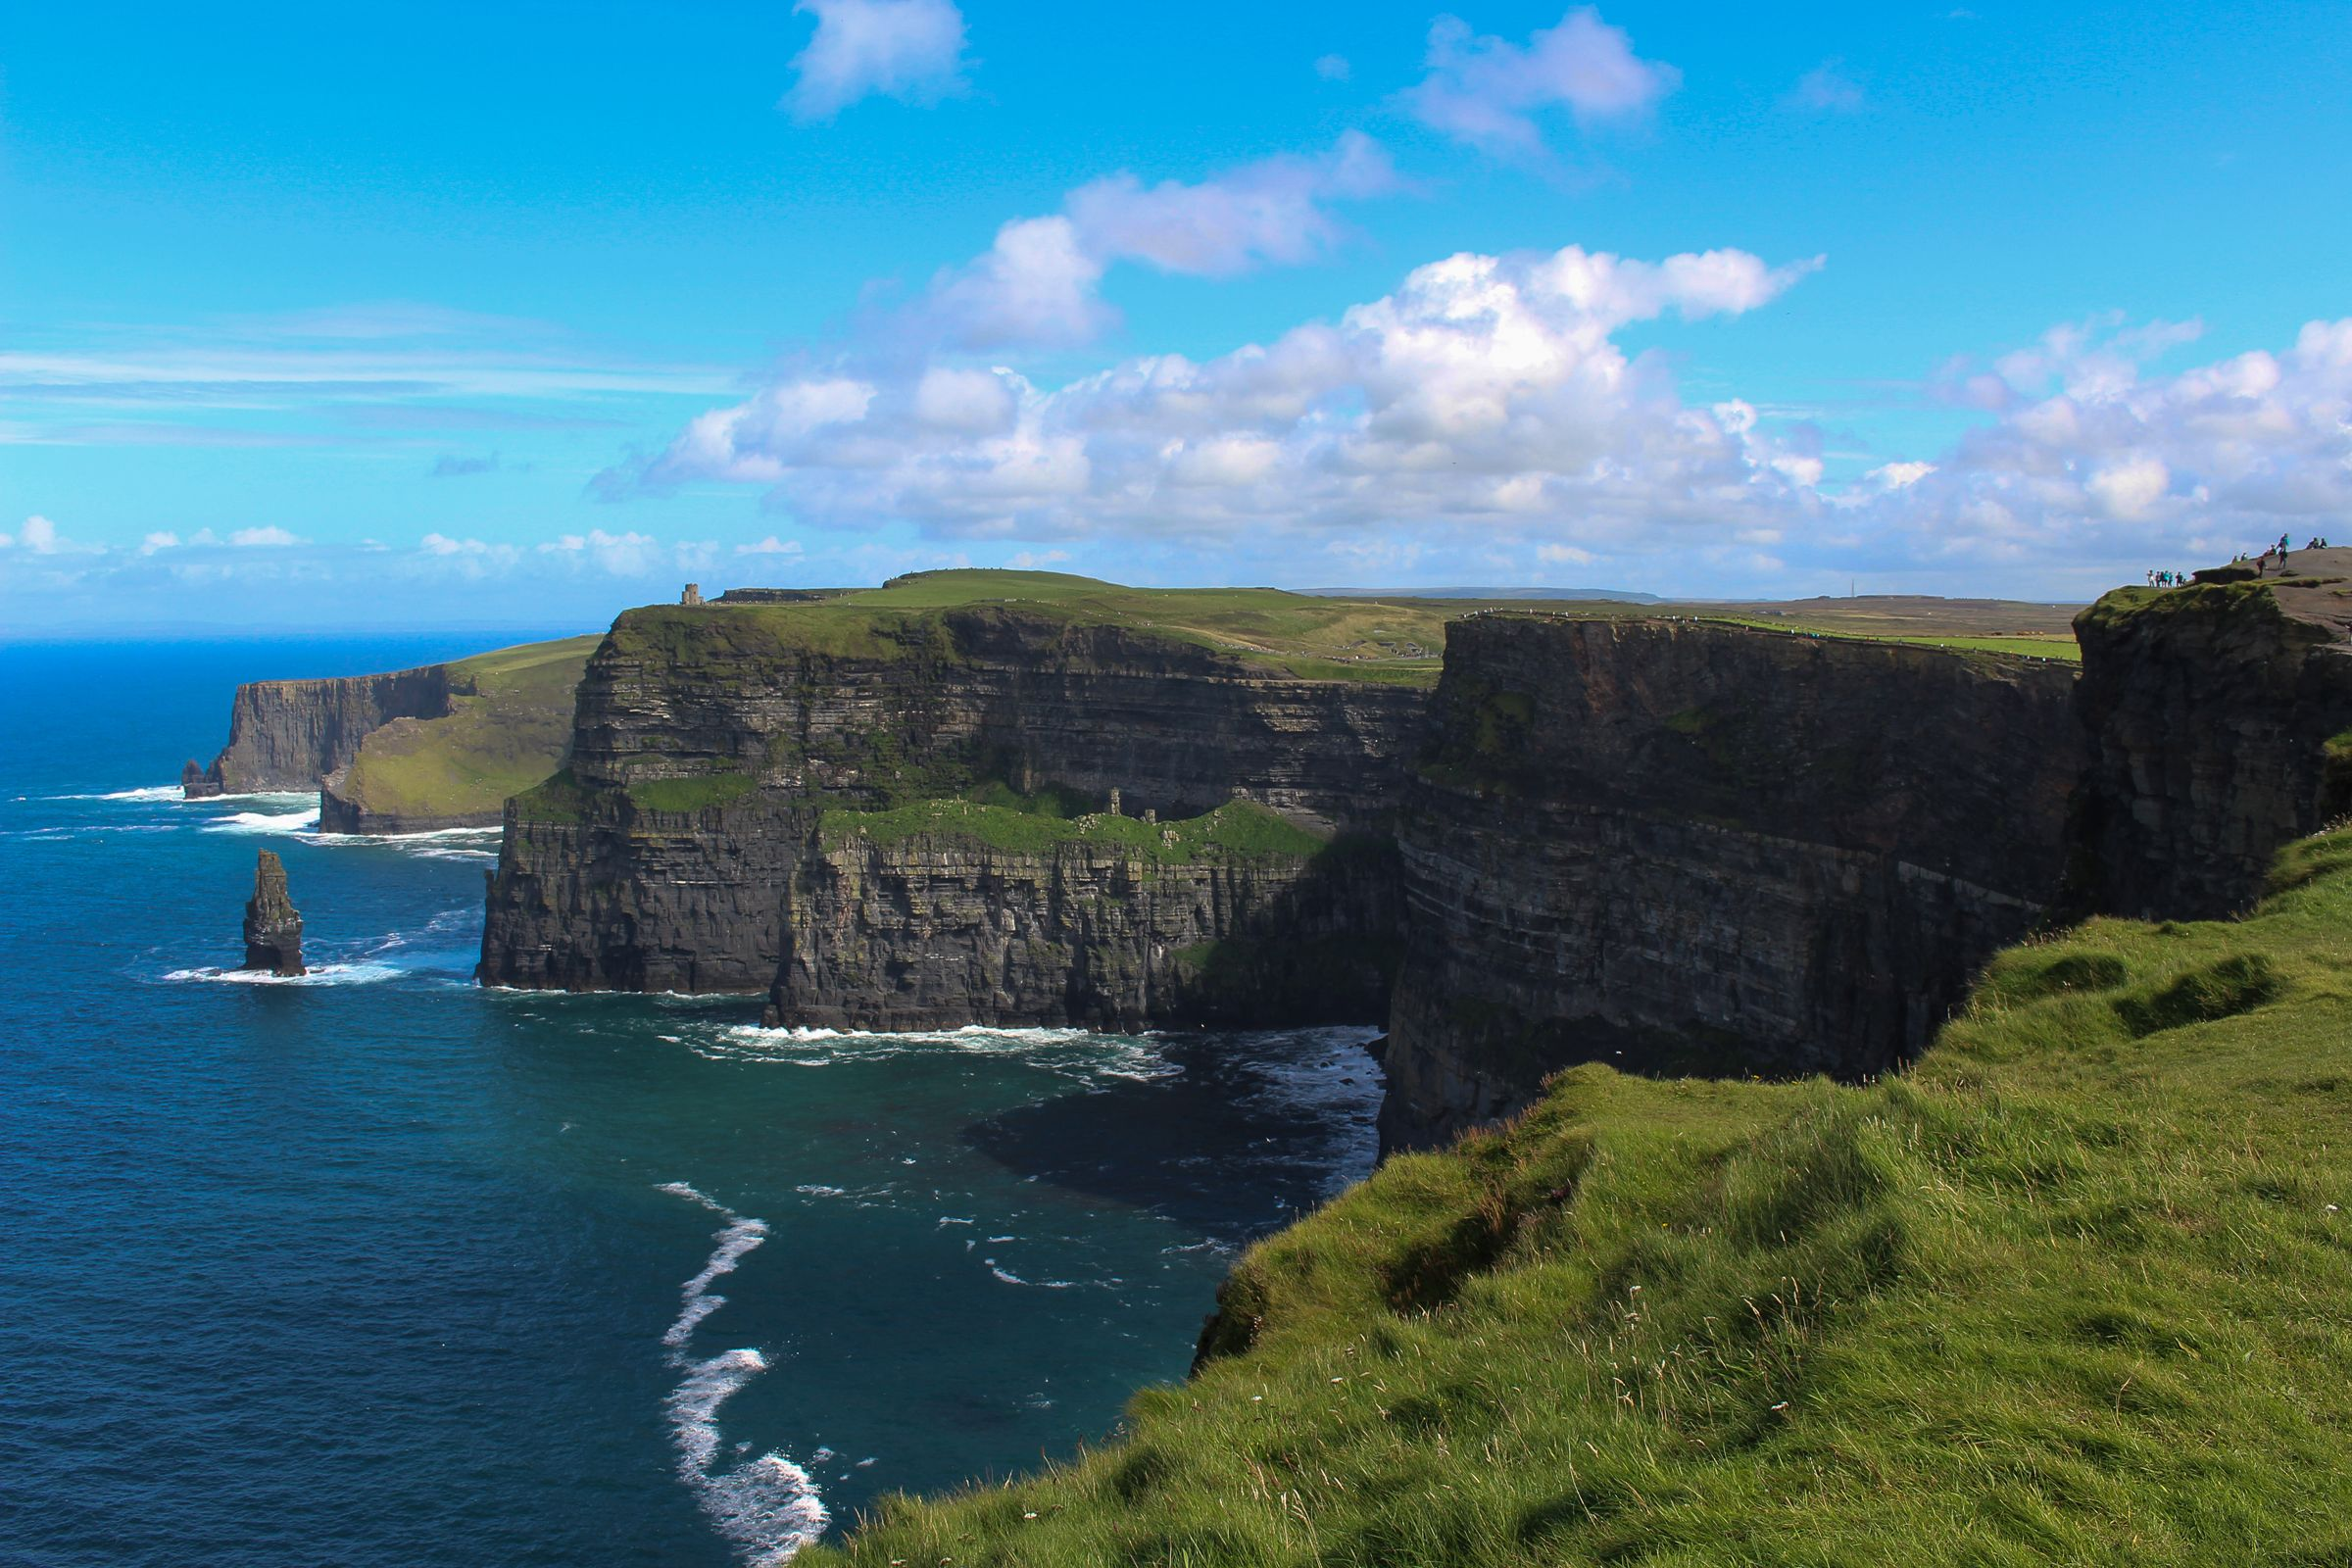 Cliffs of Moher Ireland. Lived here for 3 years went for the first time when family visited this summer [OC] [2400x1600]